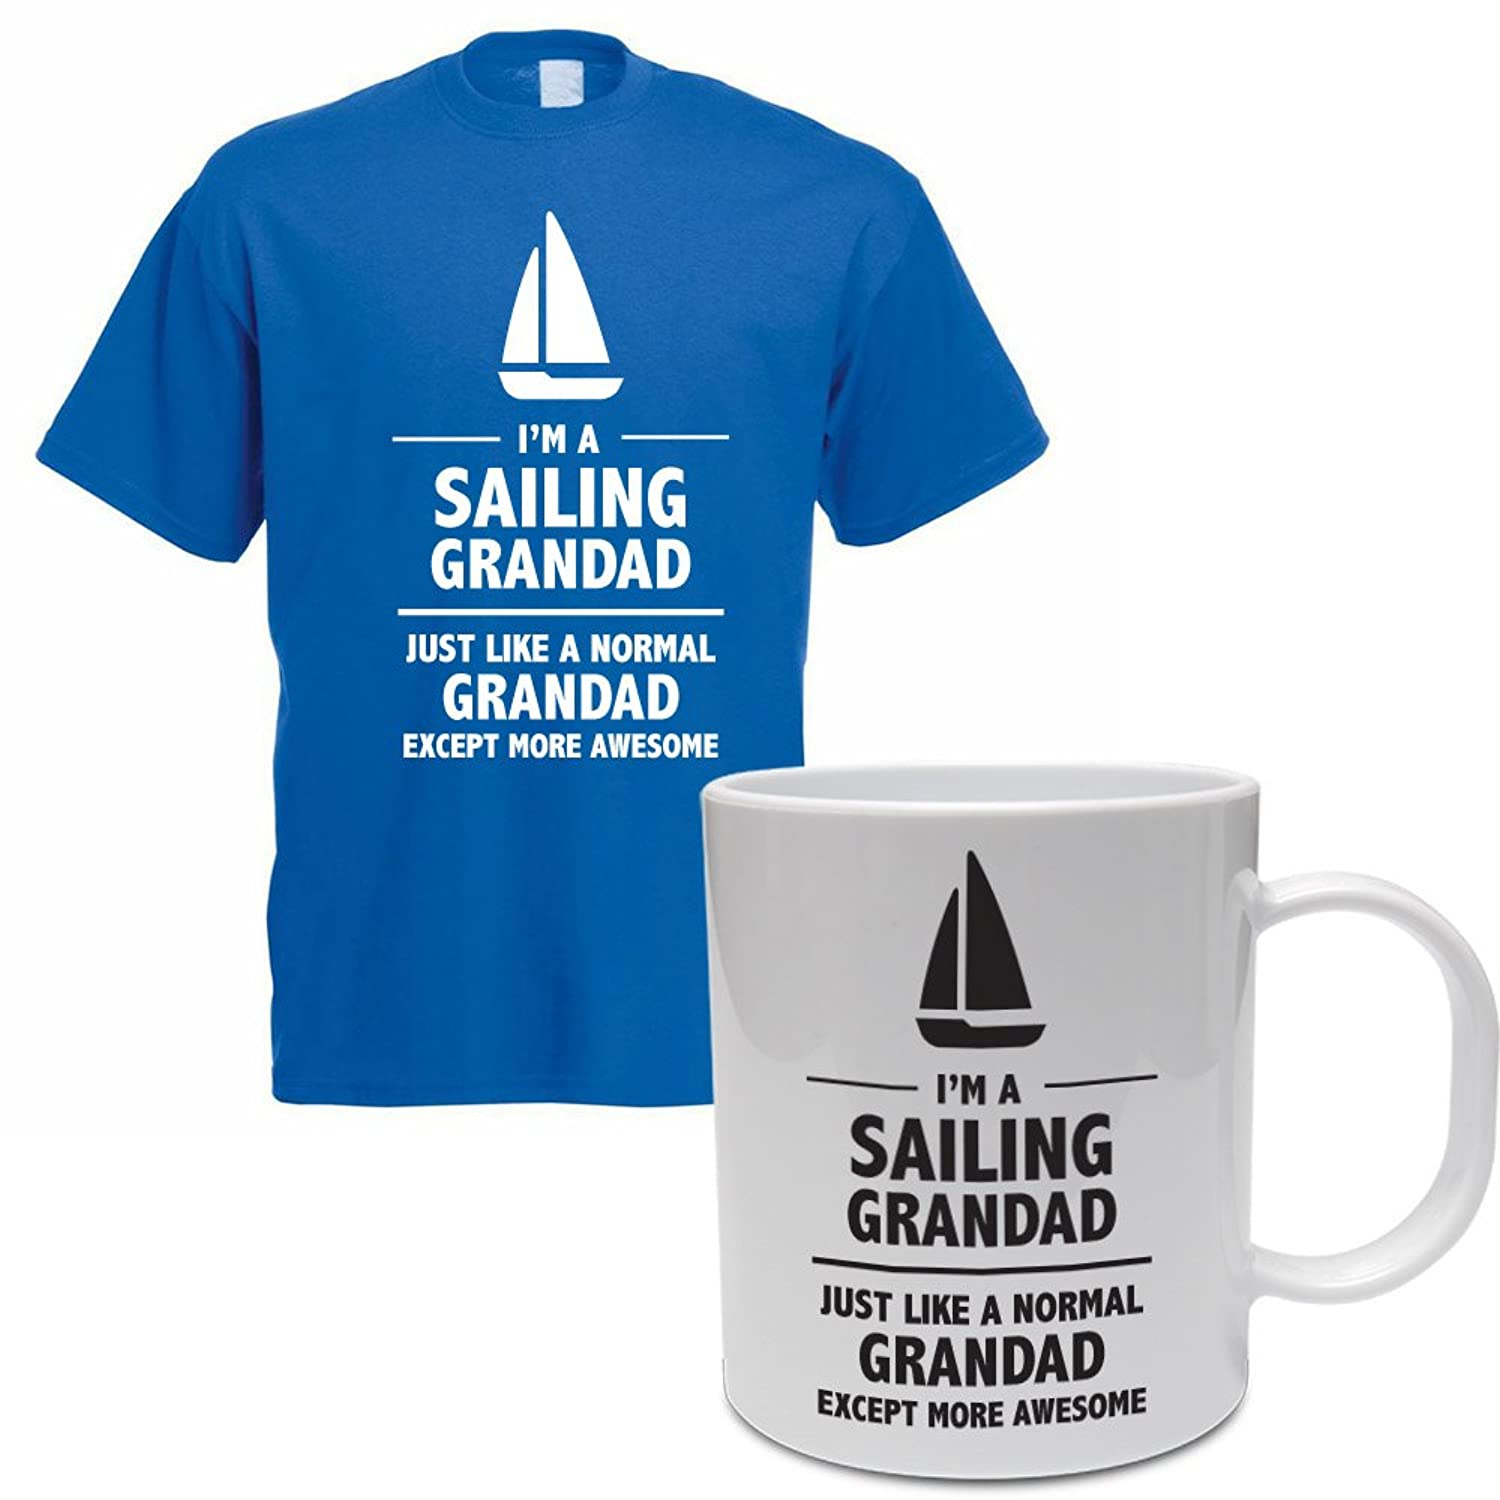 I'M A SAILING GRANDAD - Father's Day / Sporting Gift / Novelty / Men's T-Shirt And Ceramic Mug Gift Set